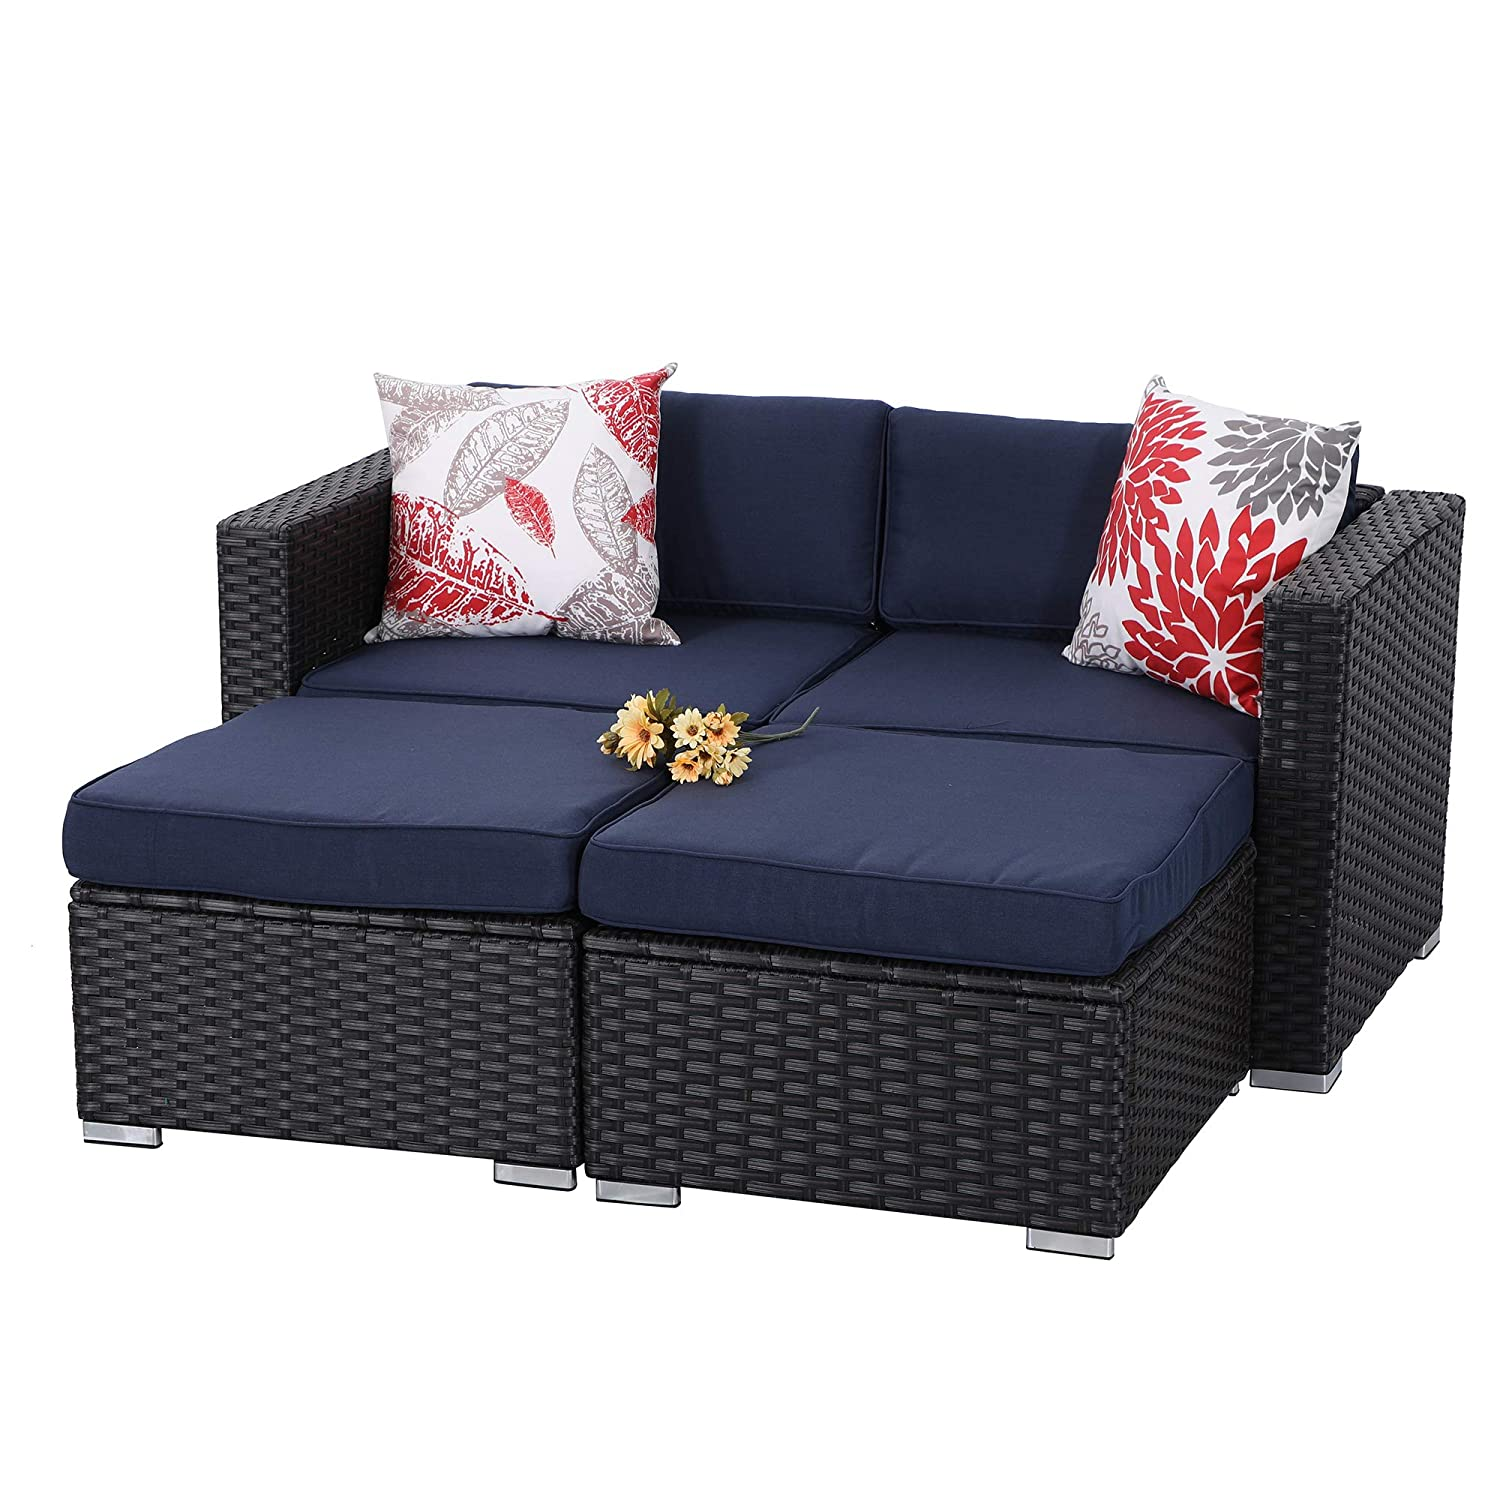 Amazon com phi villa 4 piece patio furniture daybed set rattan with seat cushions blue garden outdoor